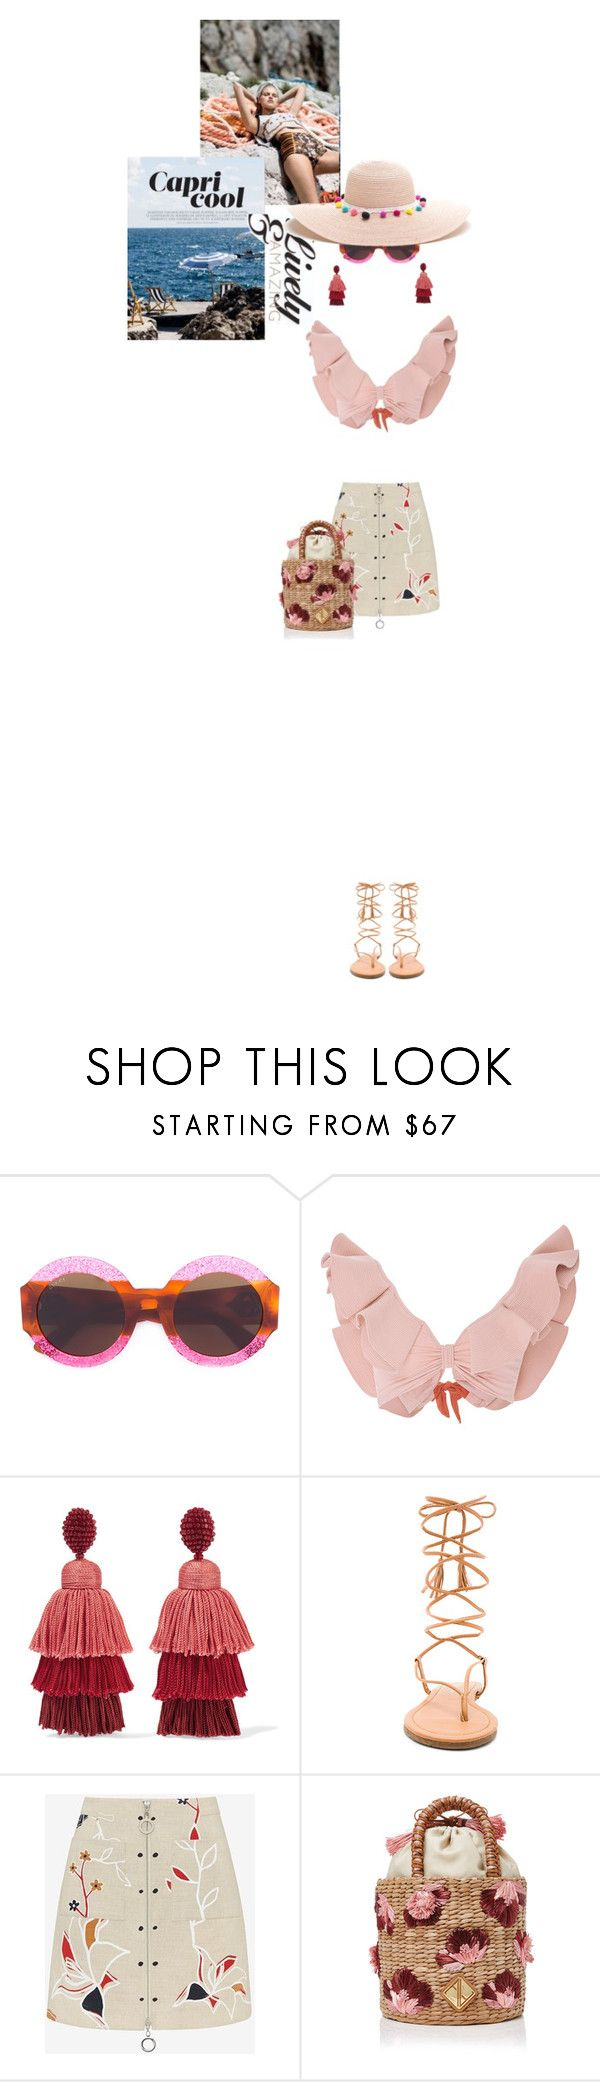 """Untitled #310"" by arees ❤ liked on Polyvore featuring Gucci, Johanna Ortiz, Oscar de la Renta, PilyQ, Edun and Aranáz"